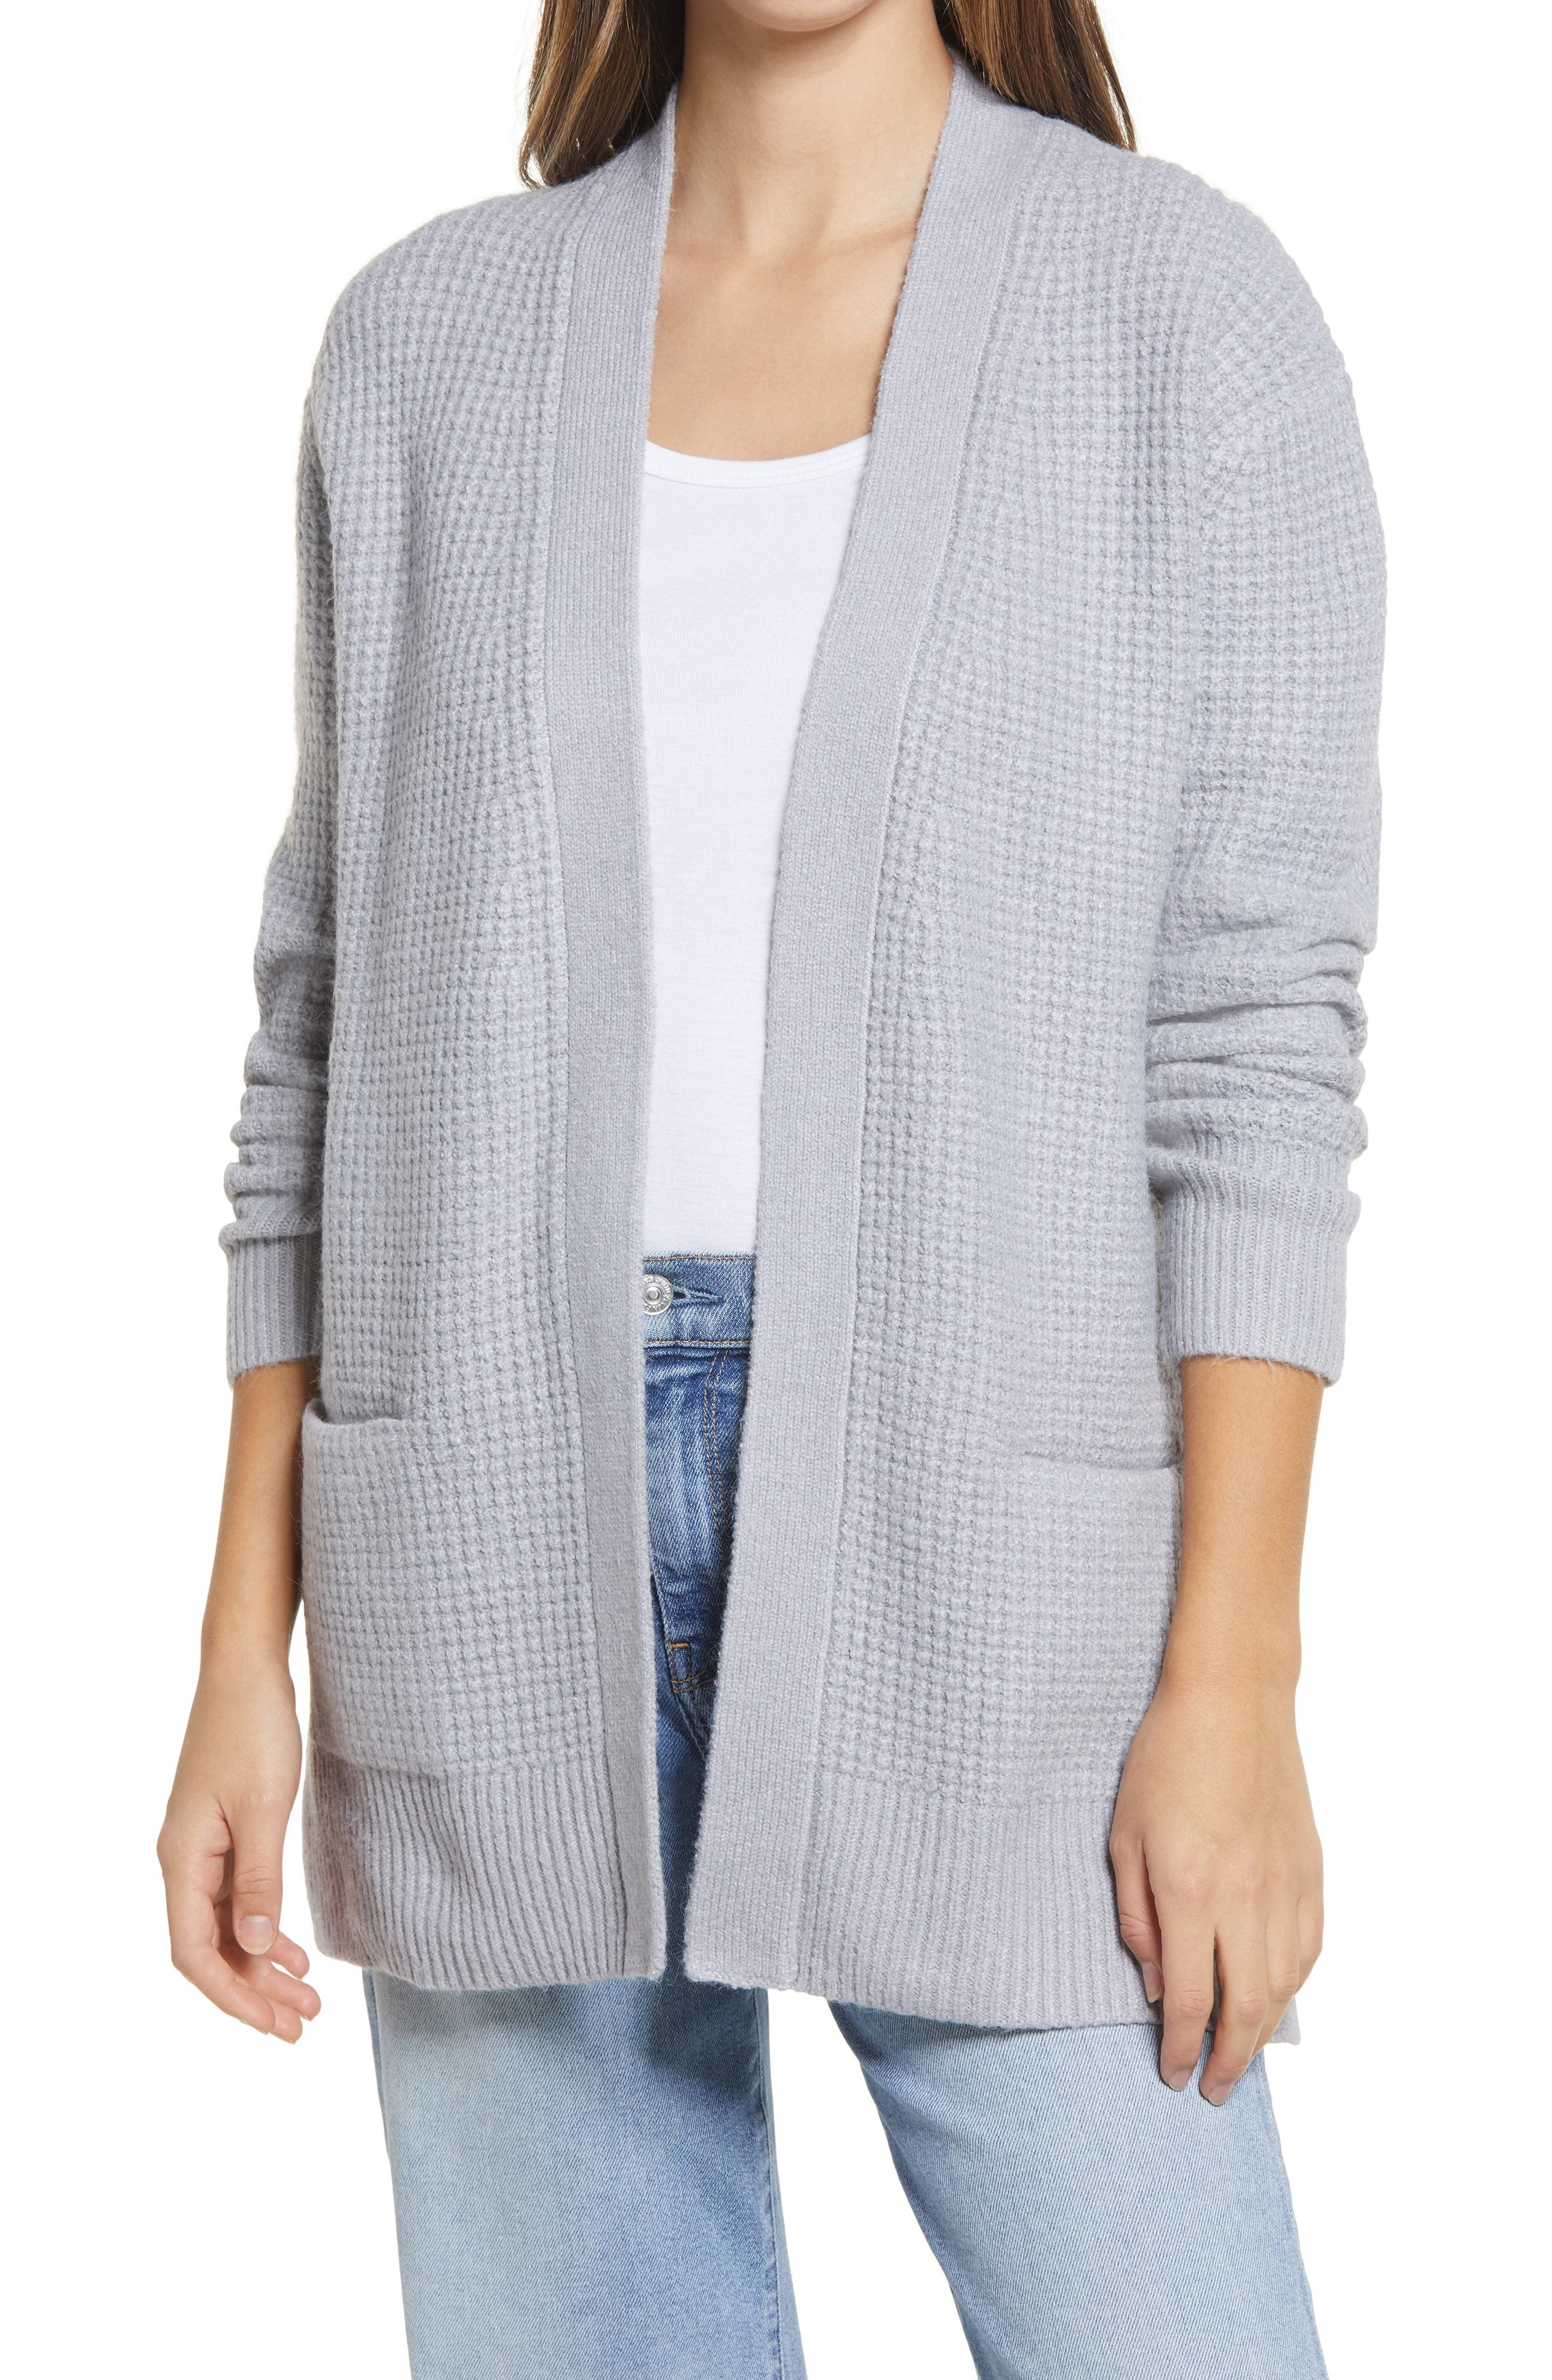 model wearing a grey waffle knit sweater over a white shirt and jeans